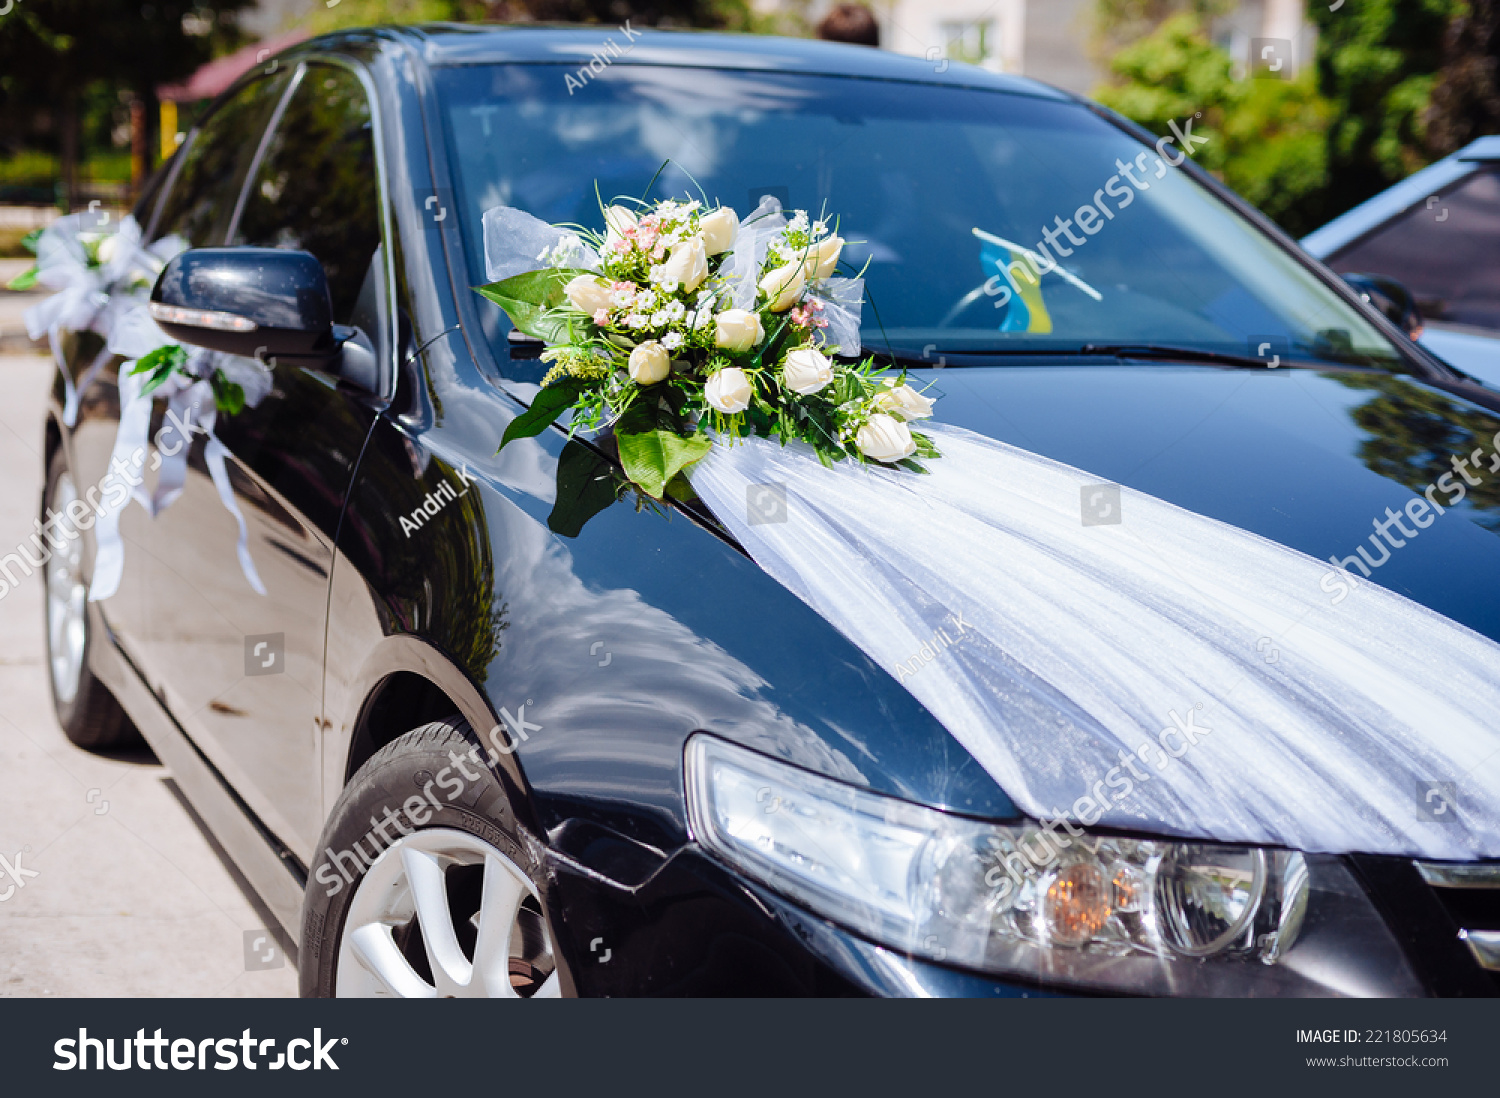 Car Decoration Weding Wedding Car Decor Flowers Bouquet Car Stock Photo Edit Now 221805634